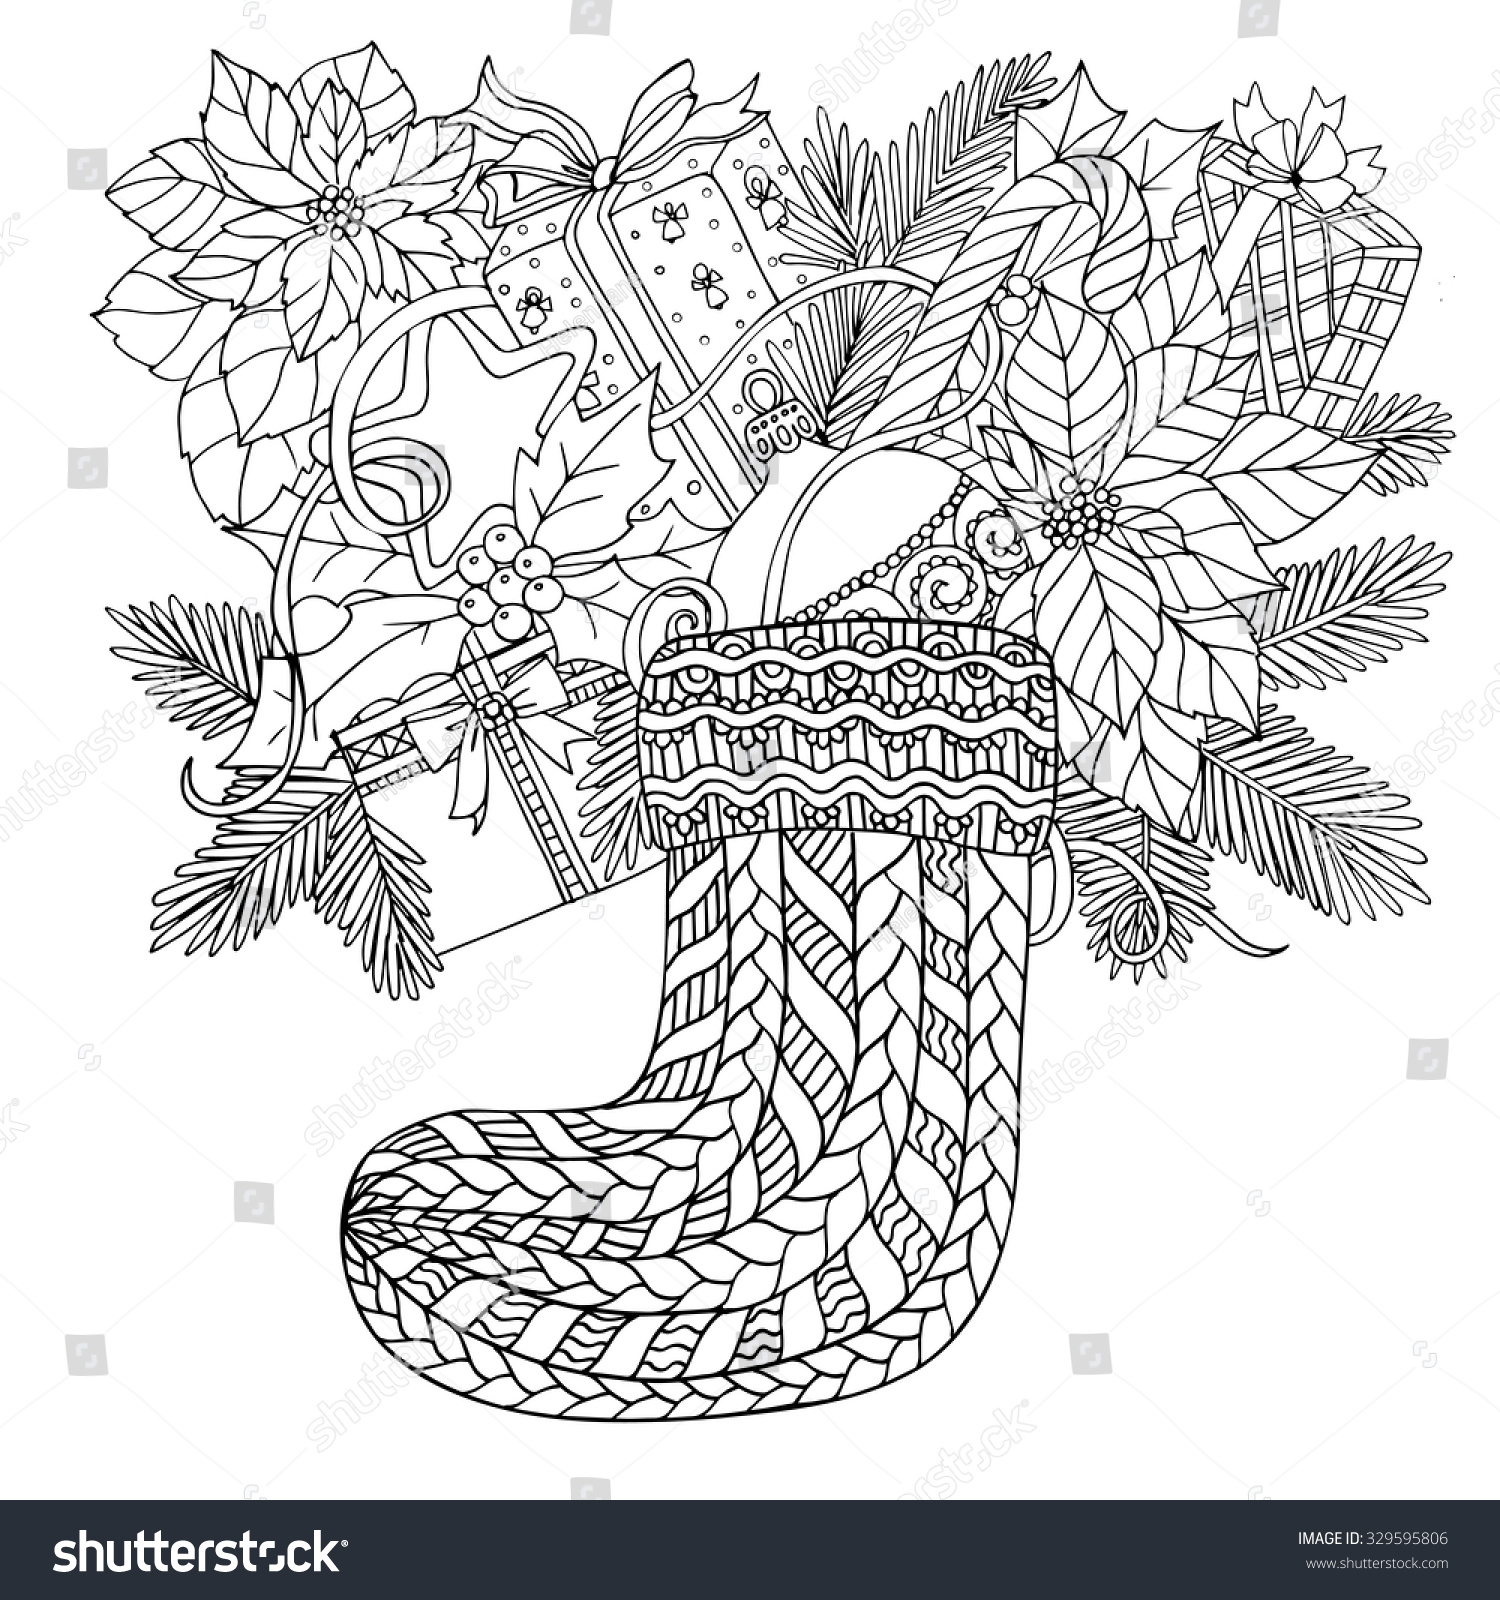 Christmas Coloring Pages For Older Students With Book Adult Children Stock Vector Royalty